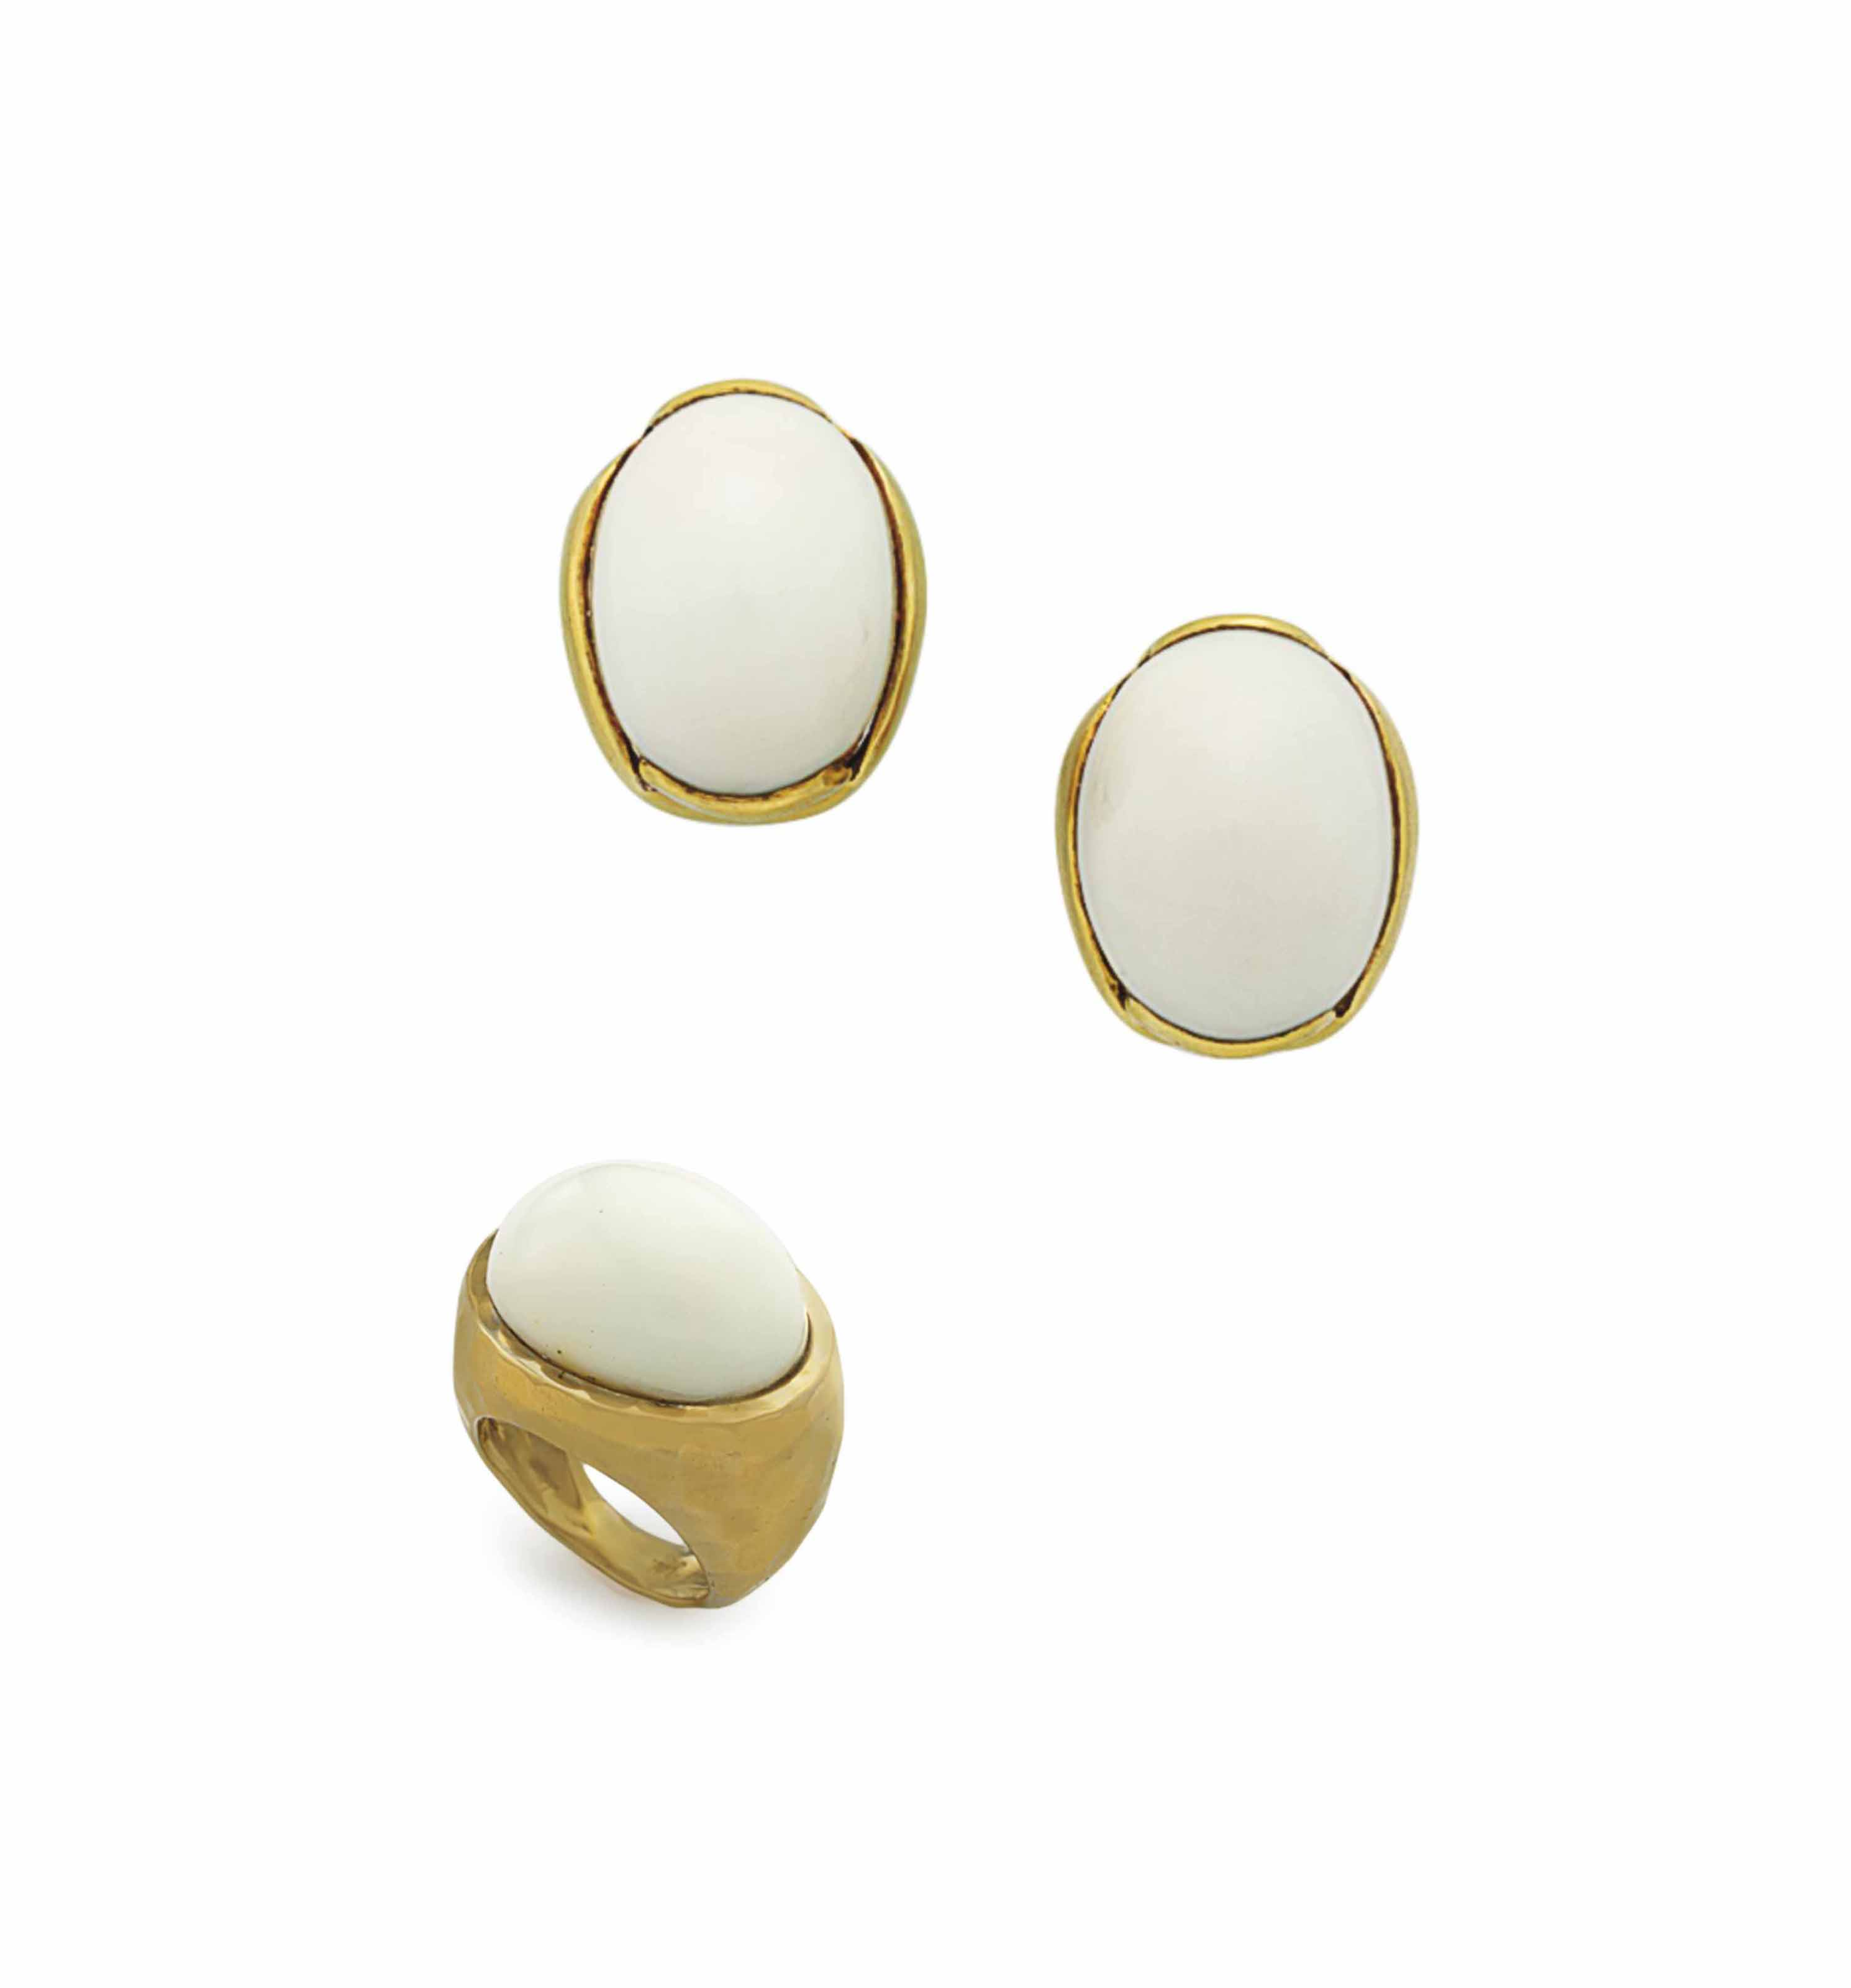 ~A GROUP OF WHITE CORAL AND GOLD JEWELRY